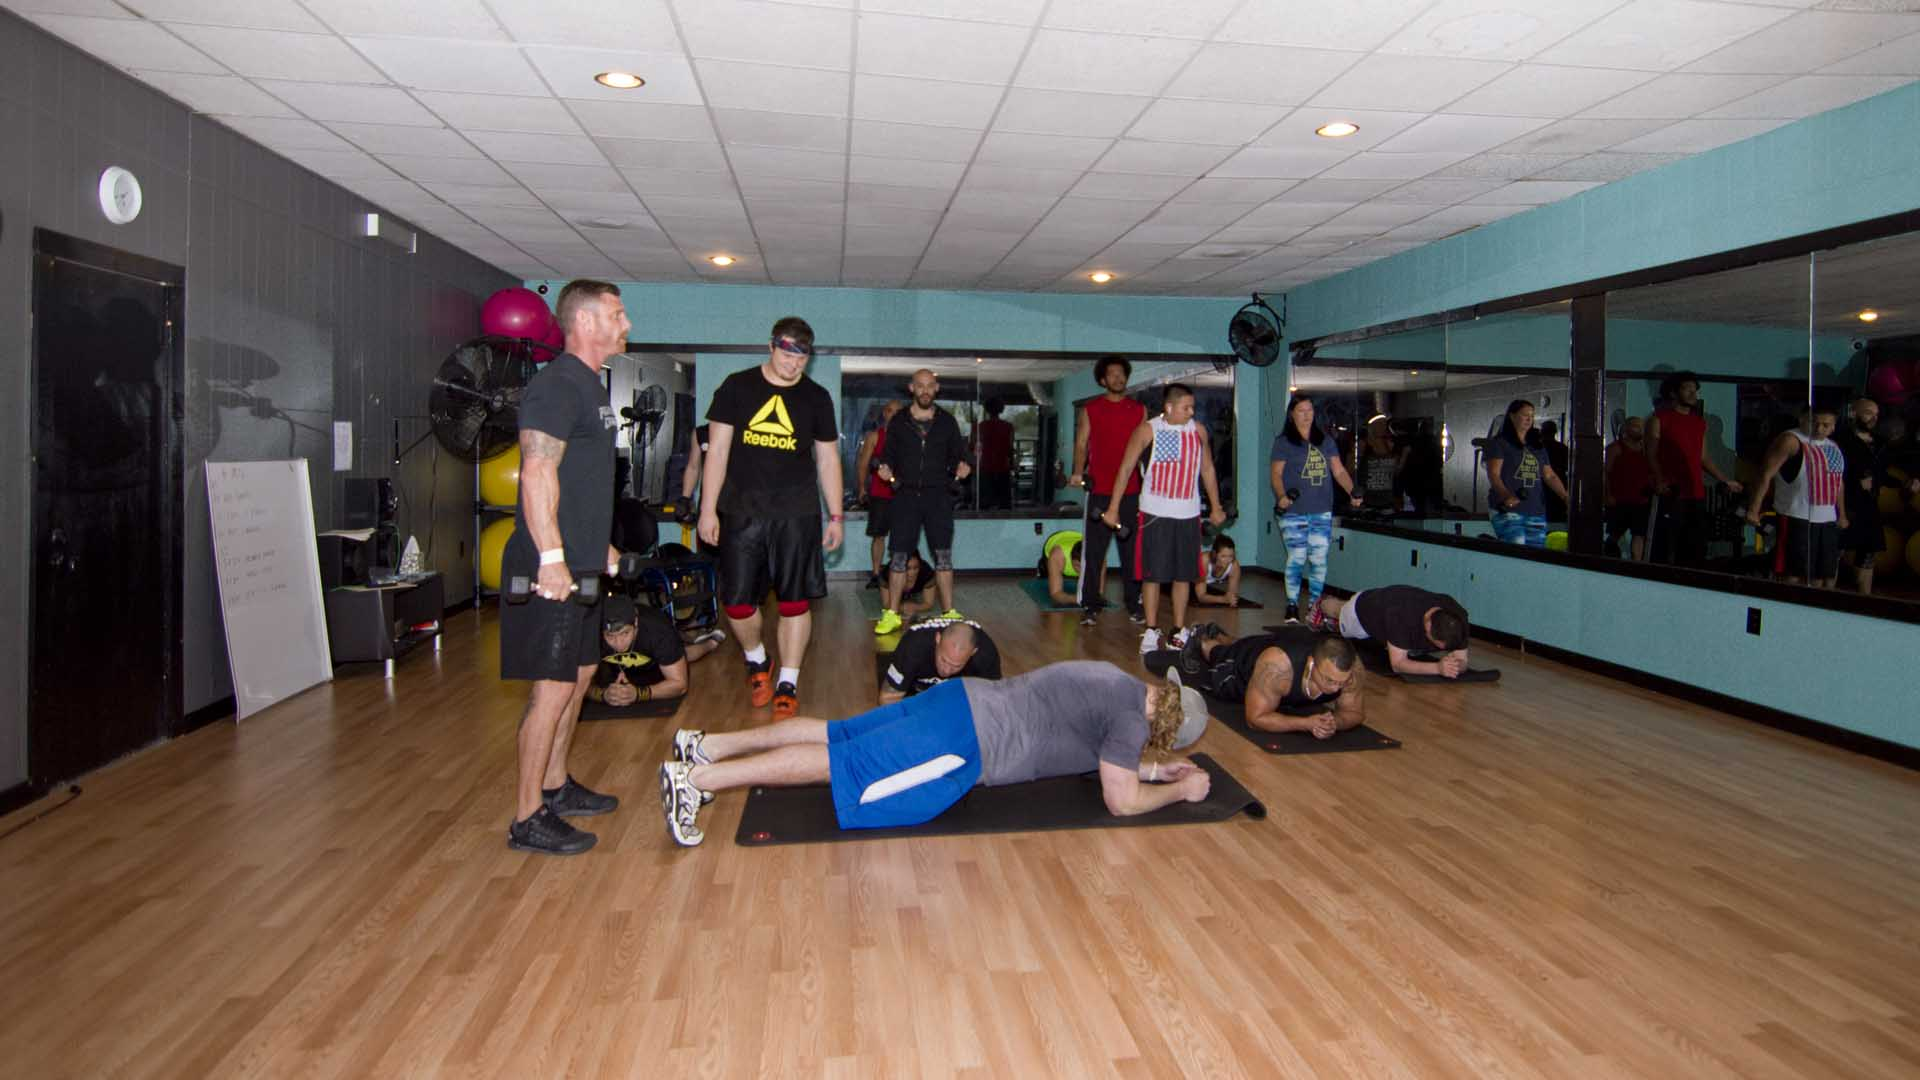 Cody checks the form of a man performing a core exercise at the Boot Camp Group Fitness class.